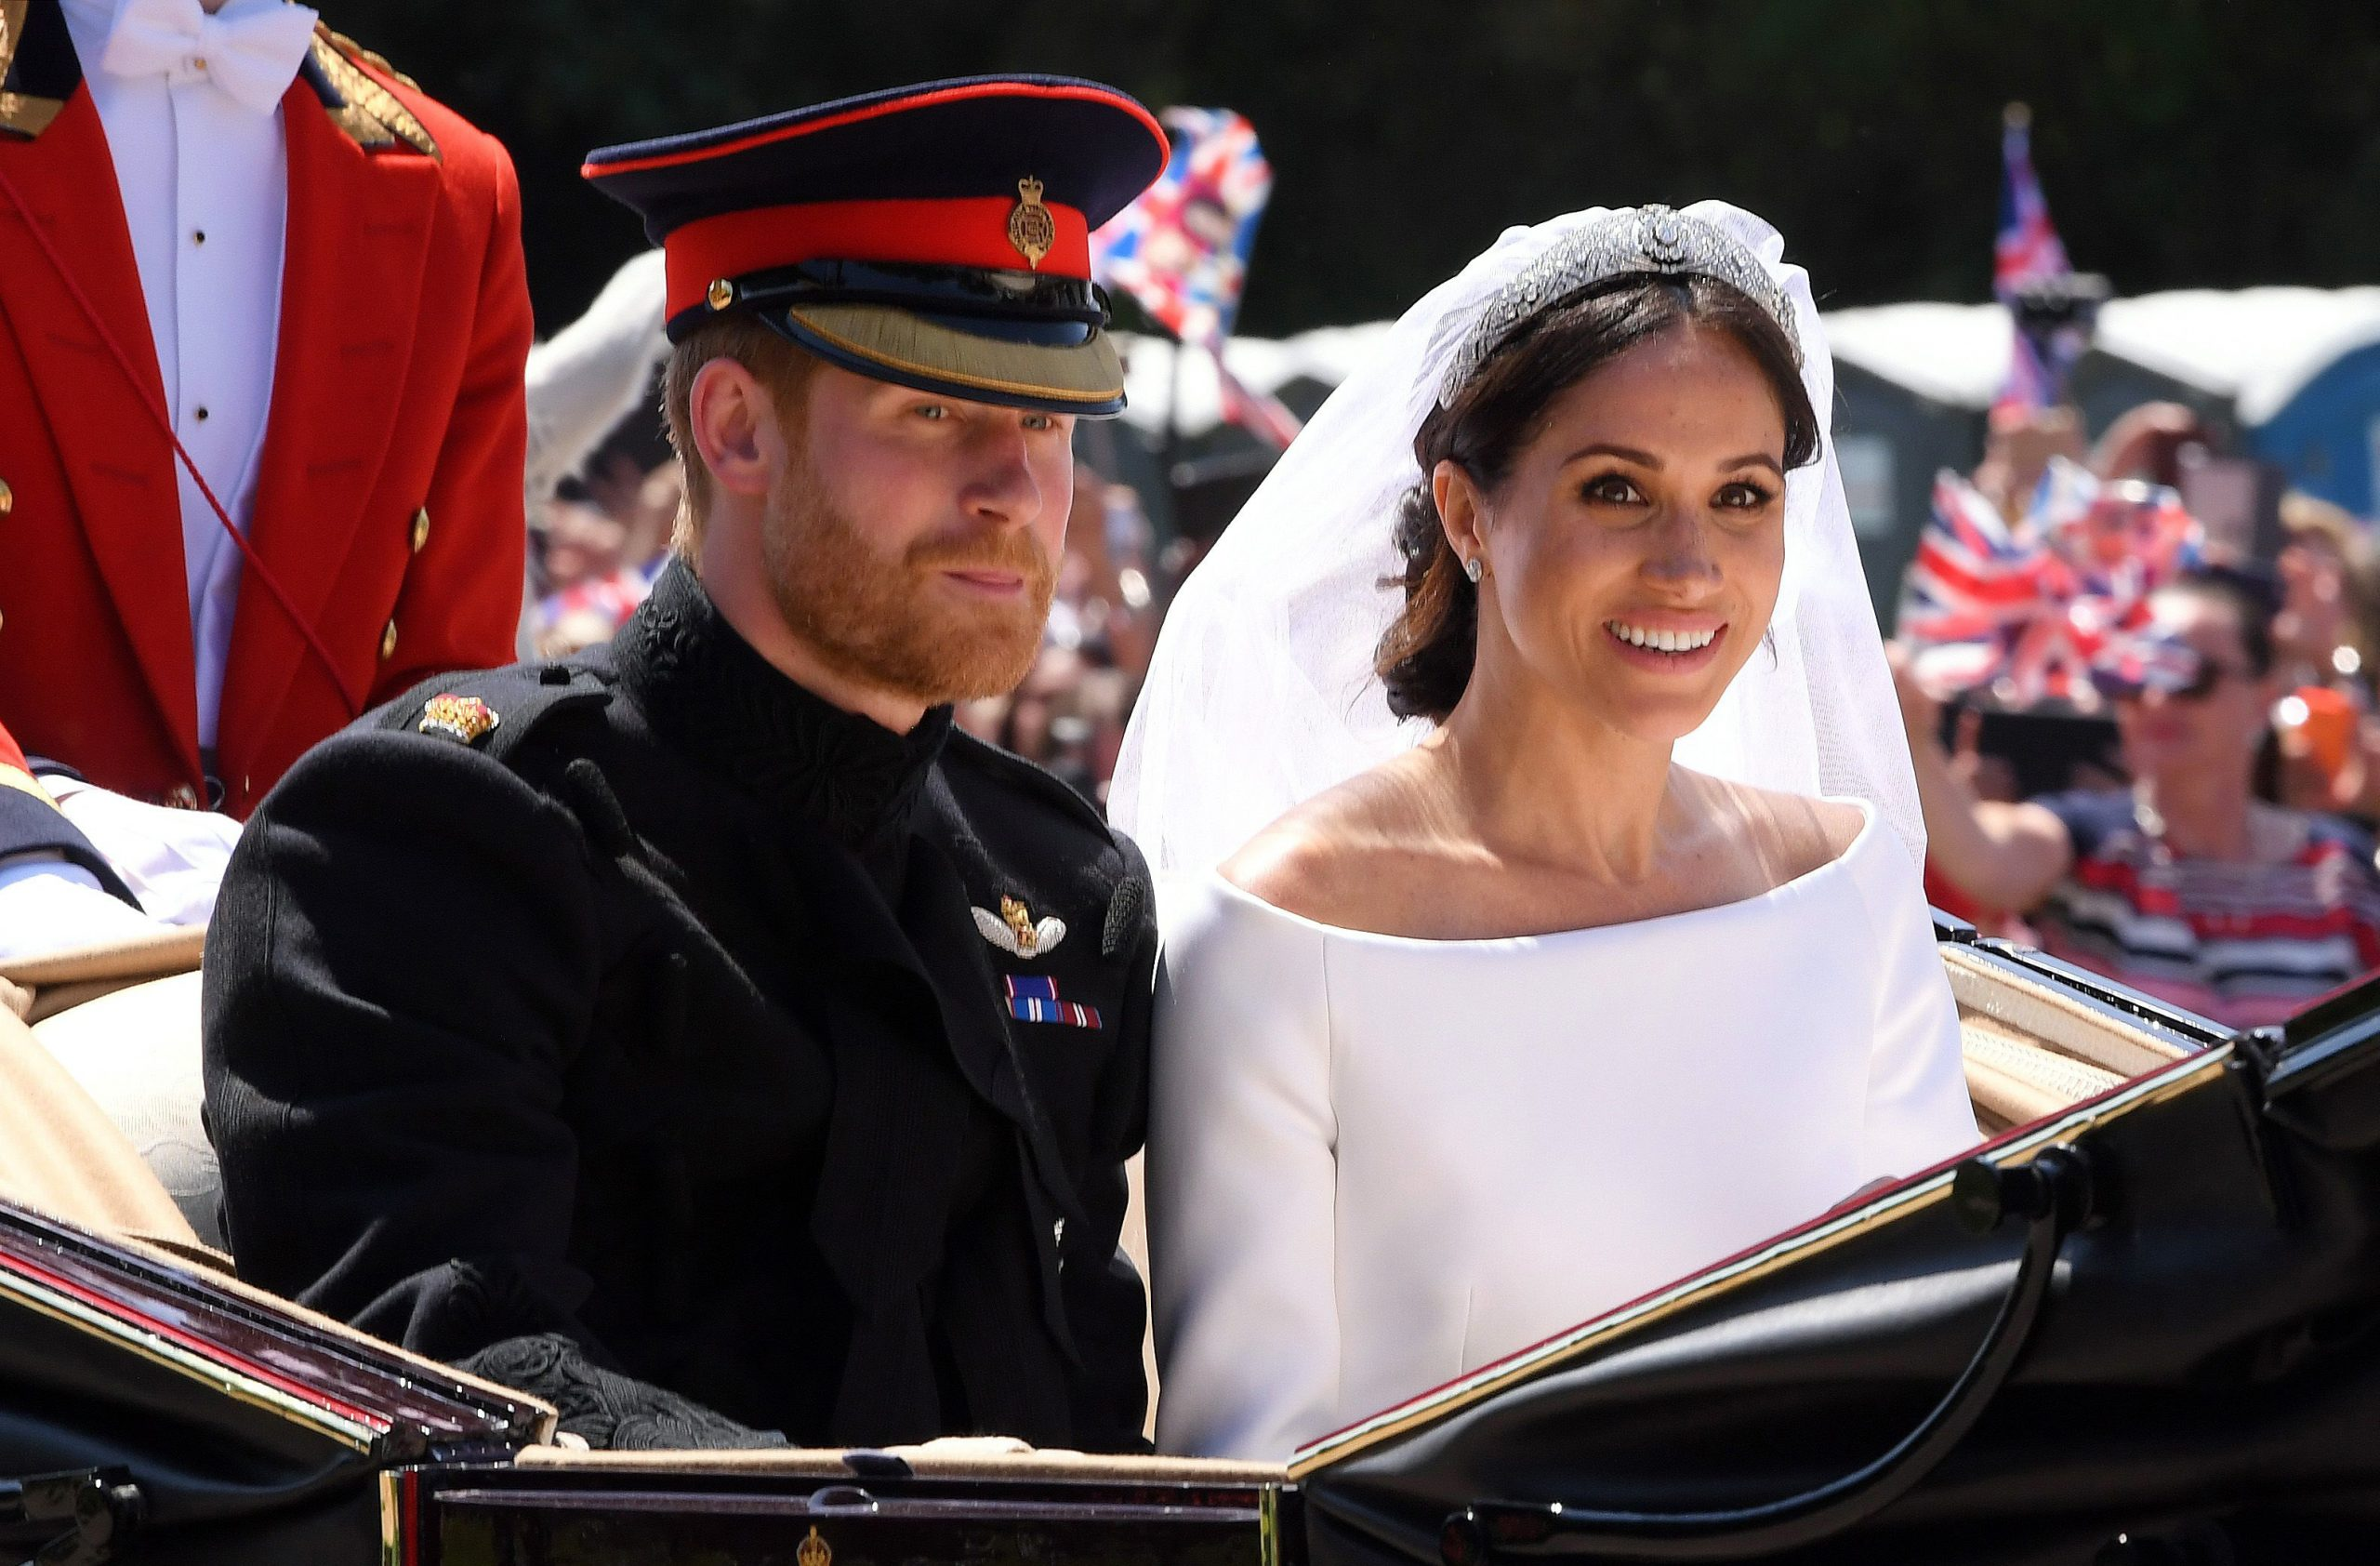 Harry and Meghan wedding day